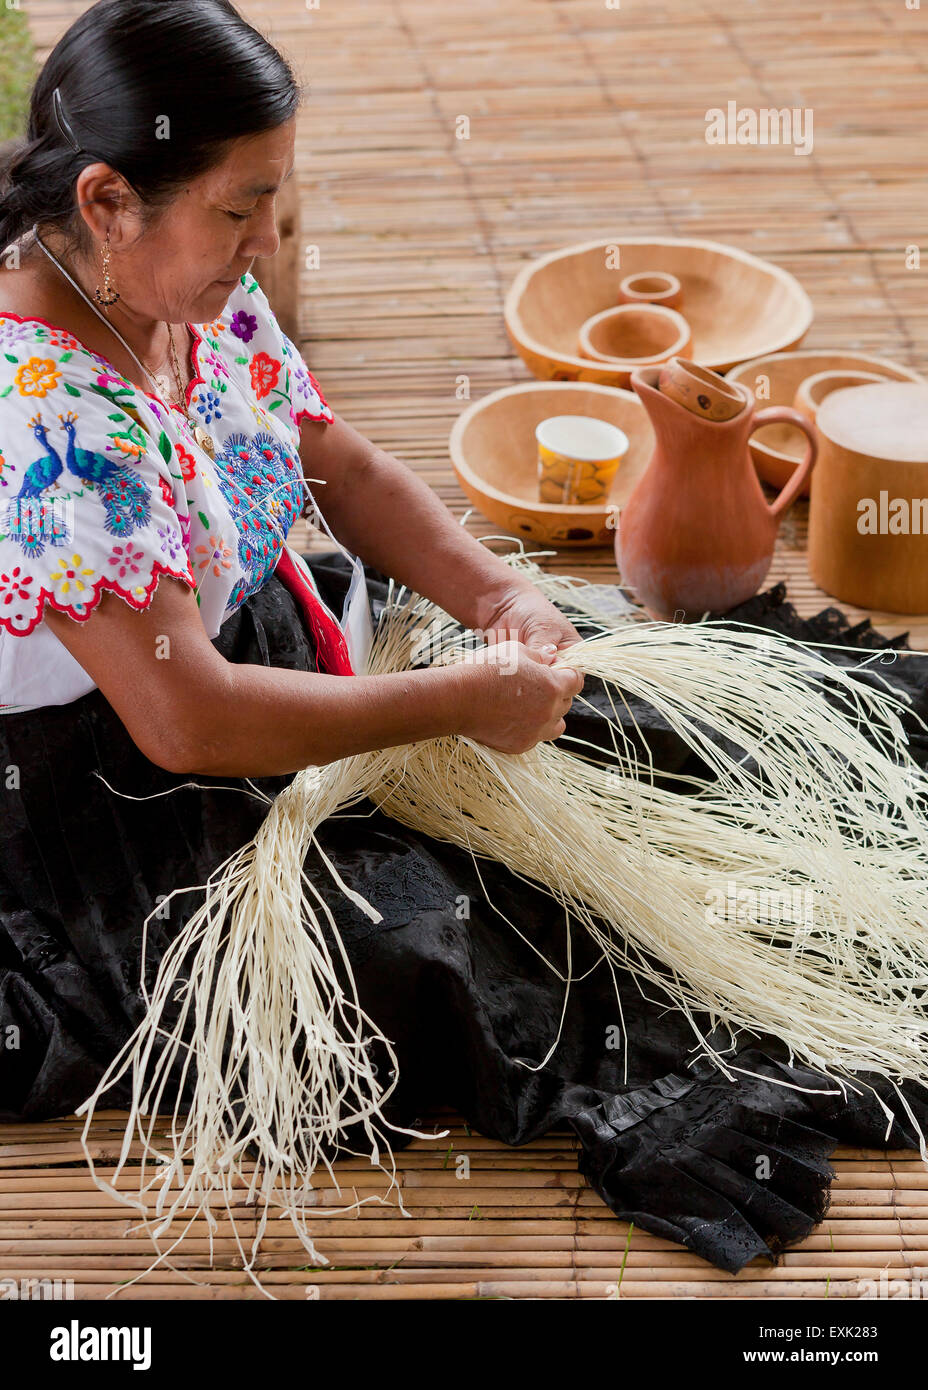 Indigenous Peruvian woman weaving a hat with natural fibers by hand - Stock Image